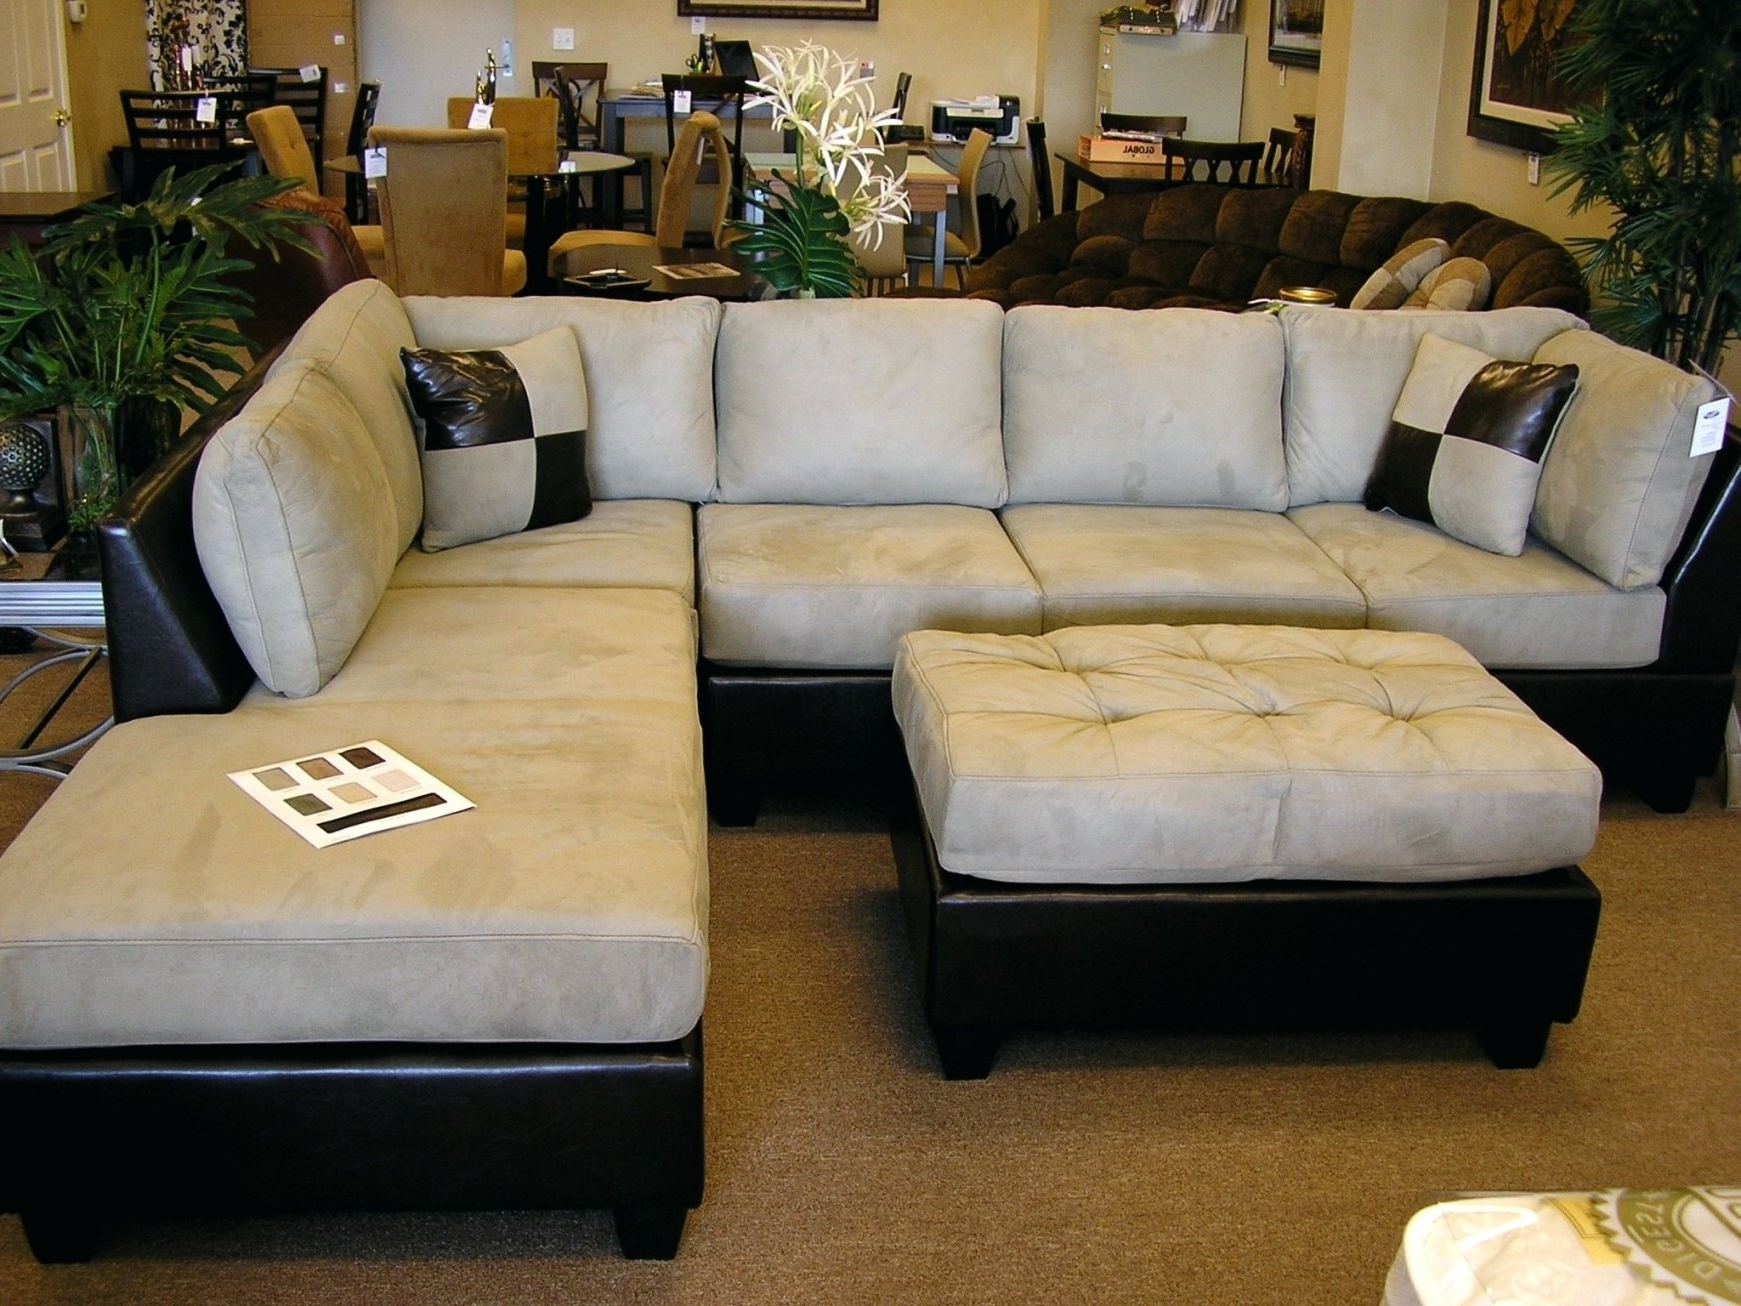 Widely Used Lazy Boy Chaise Lounges Within Boy Chaise Lounge Chairs Lazy Boy Sectional Sofas For In Lazy Boy (View 7 of 15)